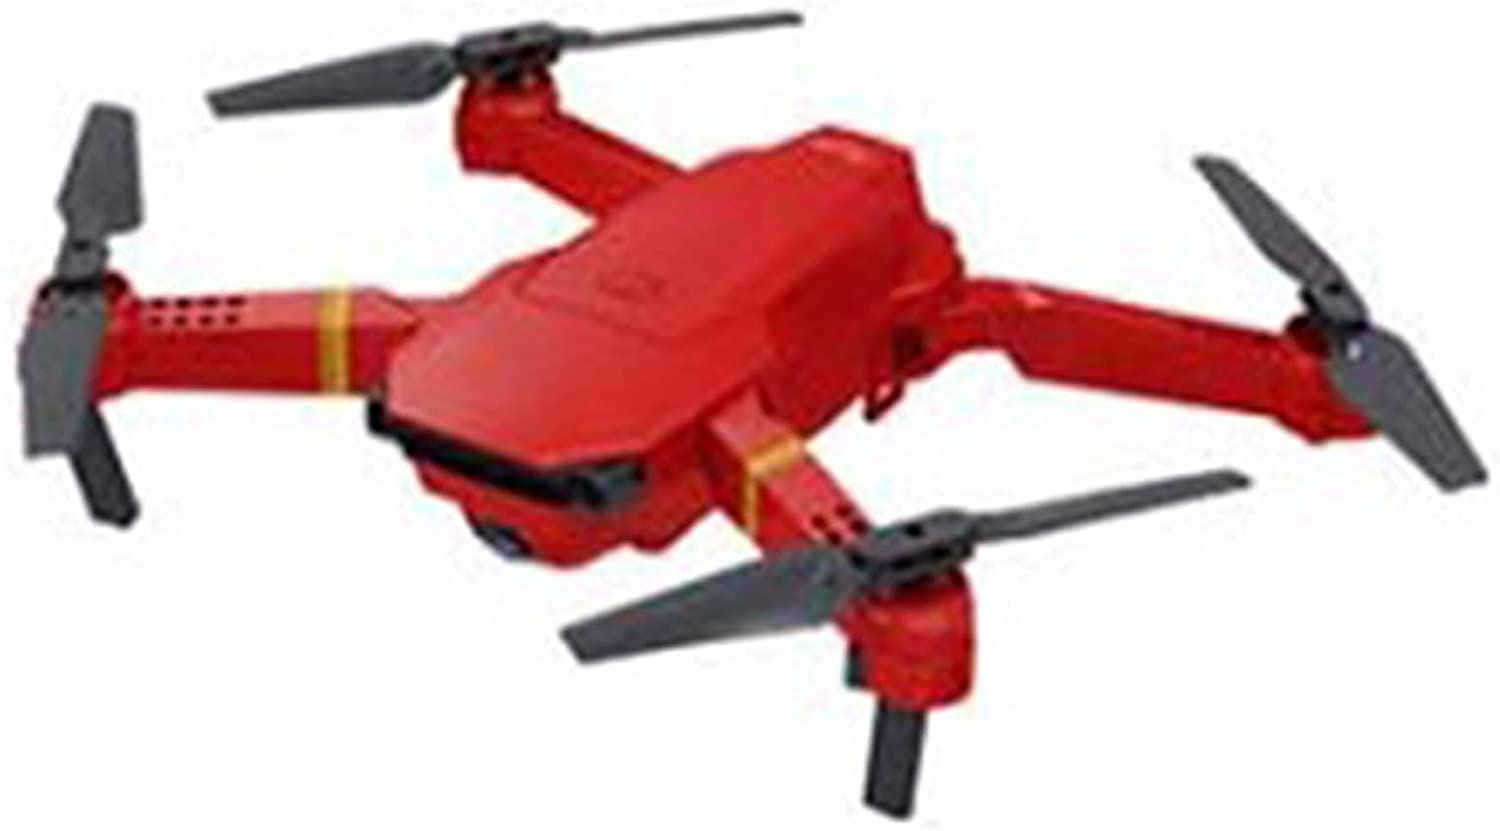 JFZ 4DRC V4 Drone with Camera for Adults and Kids, 4K HD FPV Live Video, Foldable RC Quadcopter Helicopter with Waypoints, Headless Mode,One Key Start, Altitude Hold,360 red